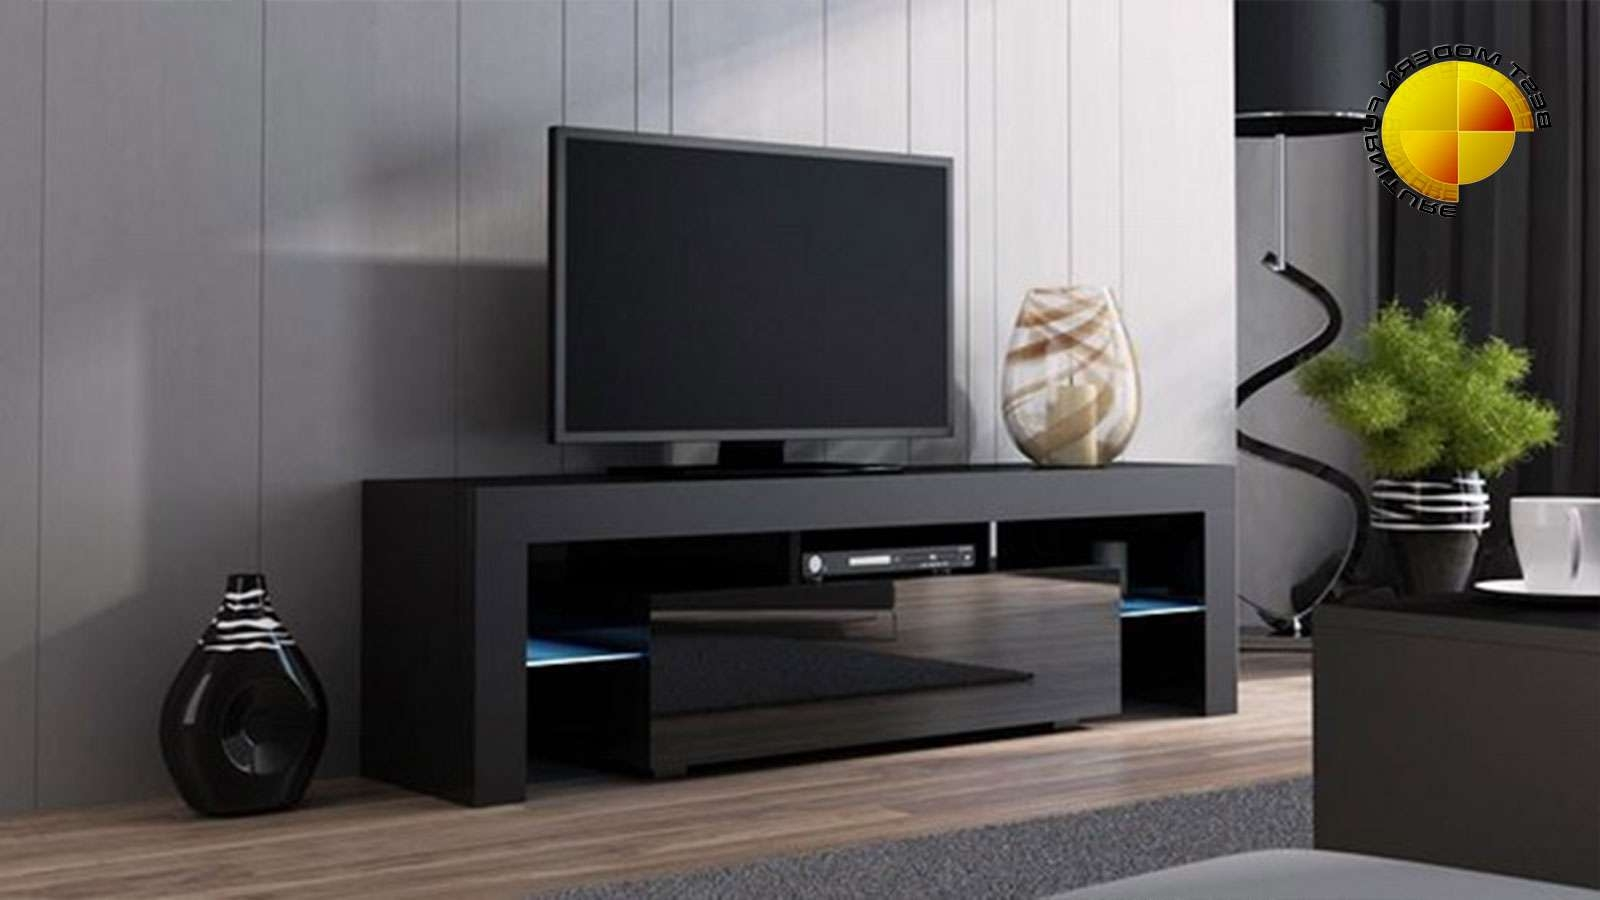 Modern Tv Stand 160Cm High Gloss Cabinet Rgb Led Lights Black Unit Regarding White High Gloss Tv Stands Unit Cabinet (View 9 of 15)